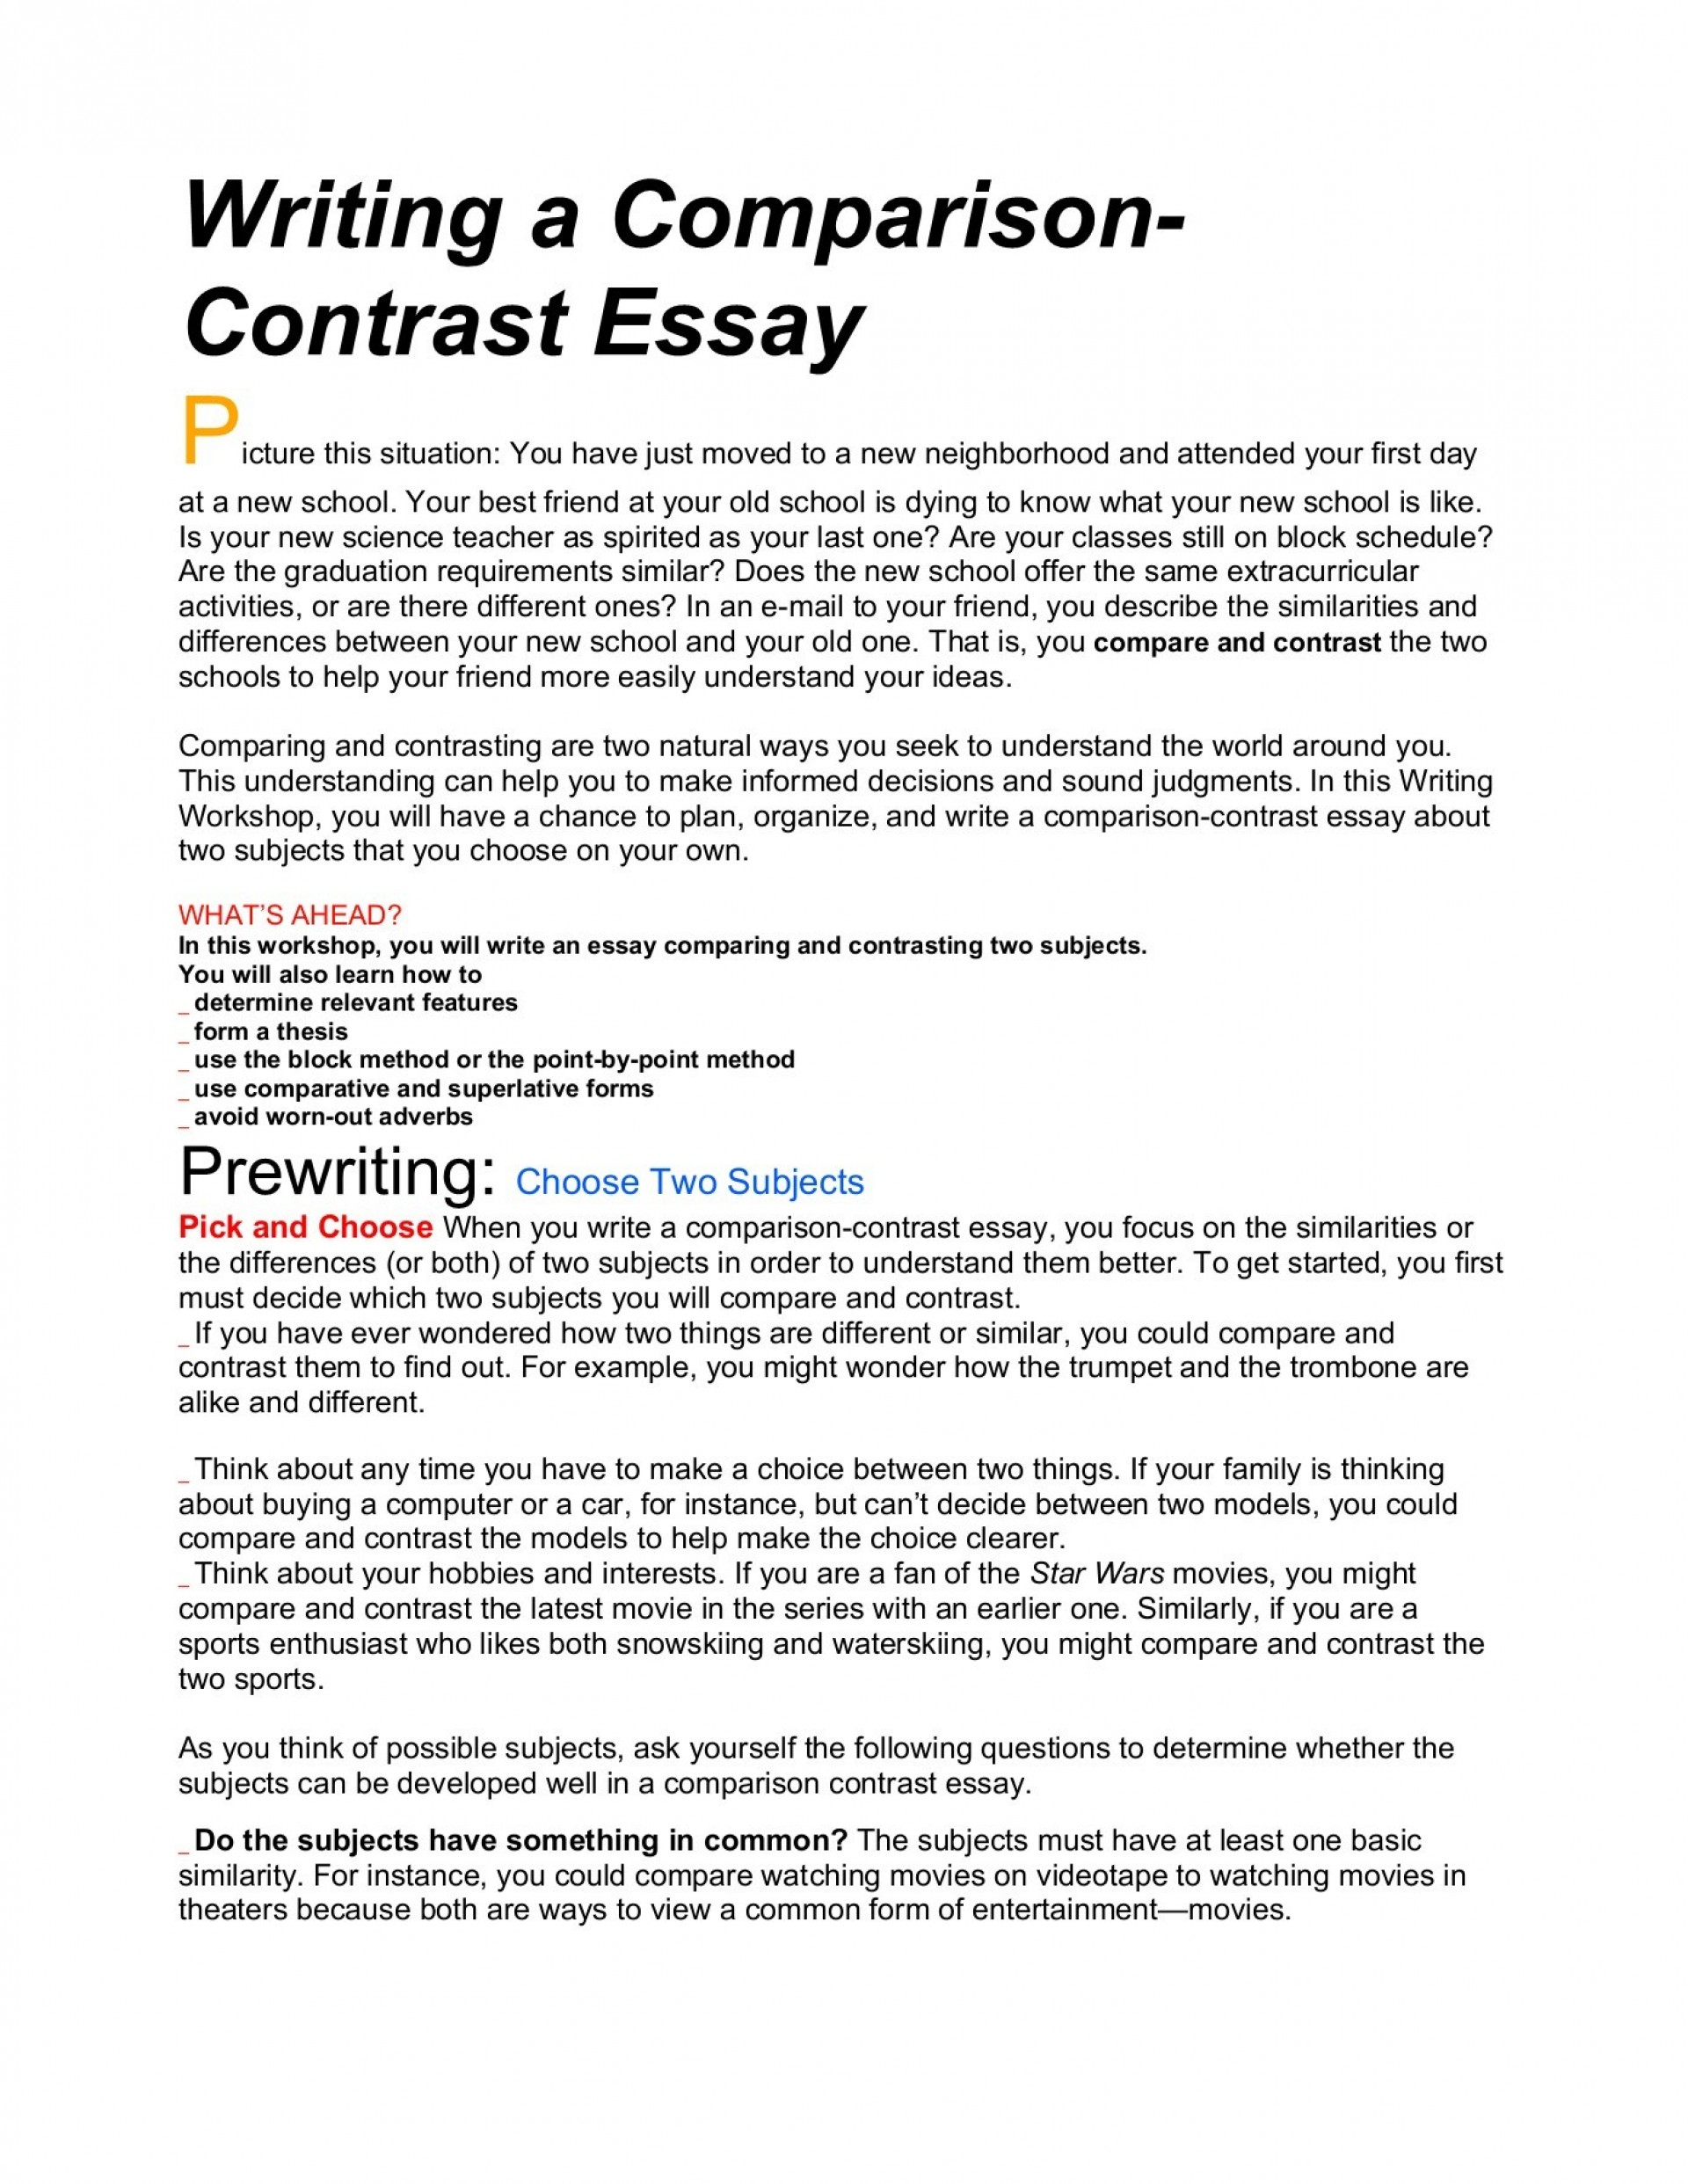 003 Essay Example How To Write Comparison And Unforgettable A Contrast An Introduction Conclusion For Compare Middle School Thesis 1920